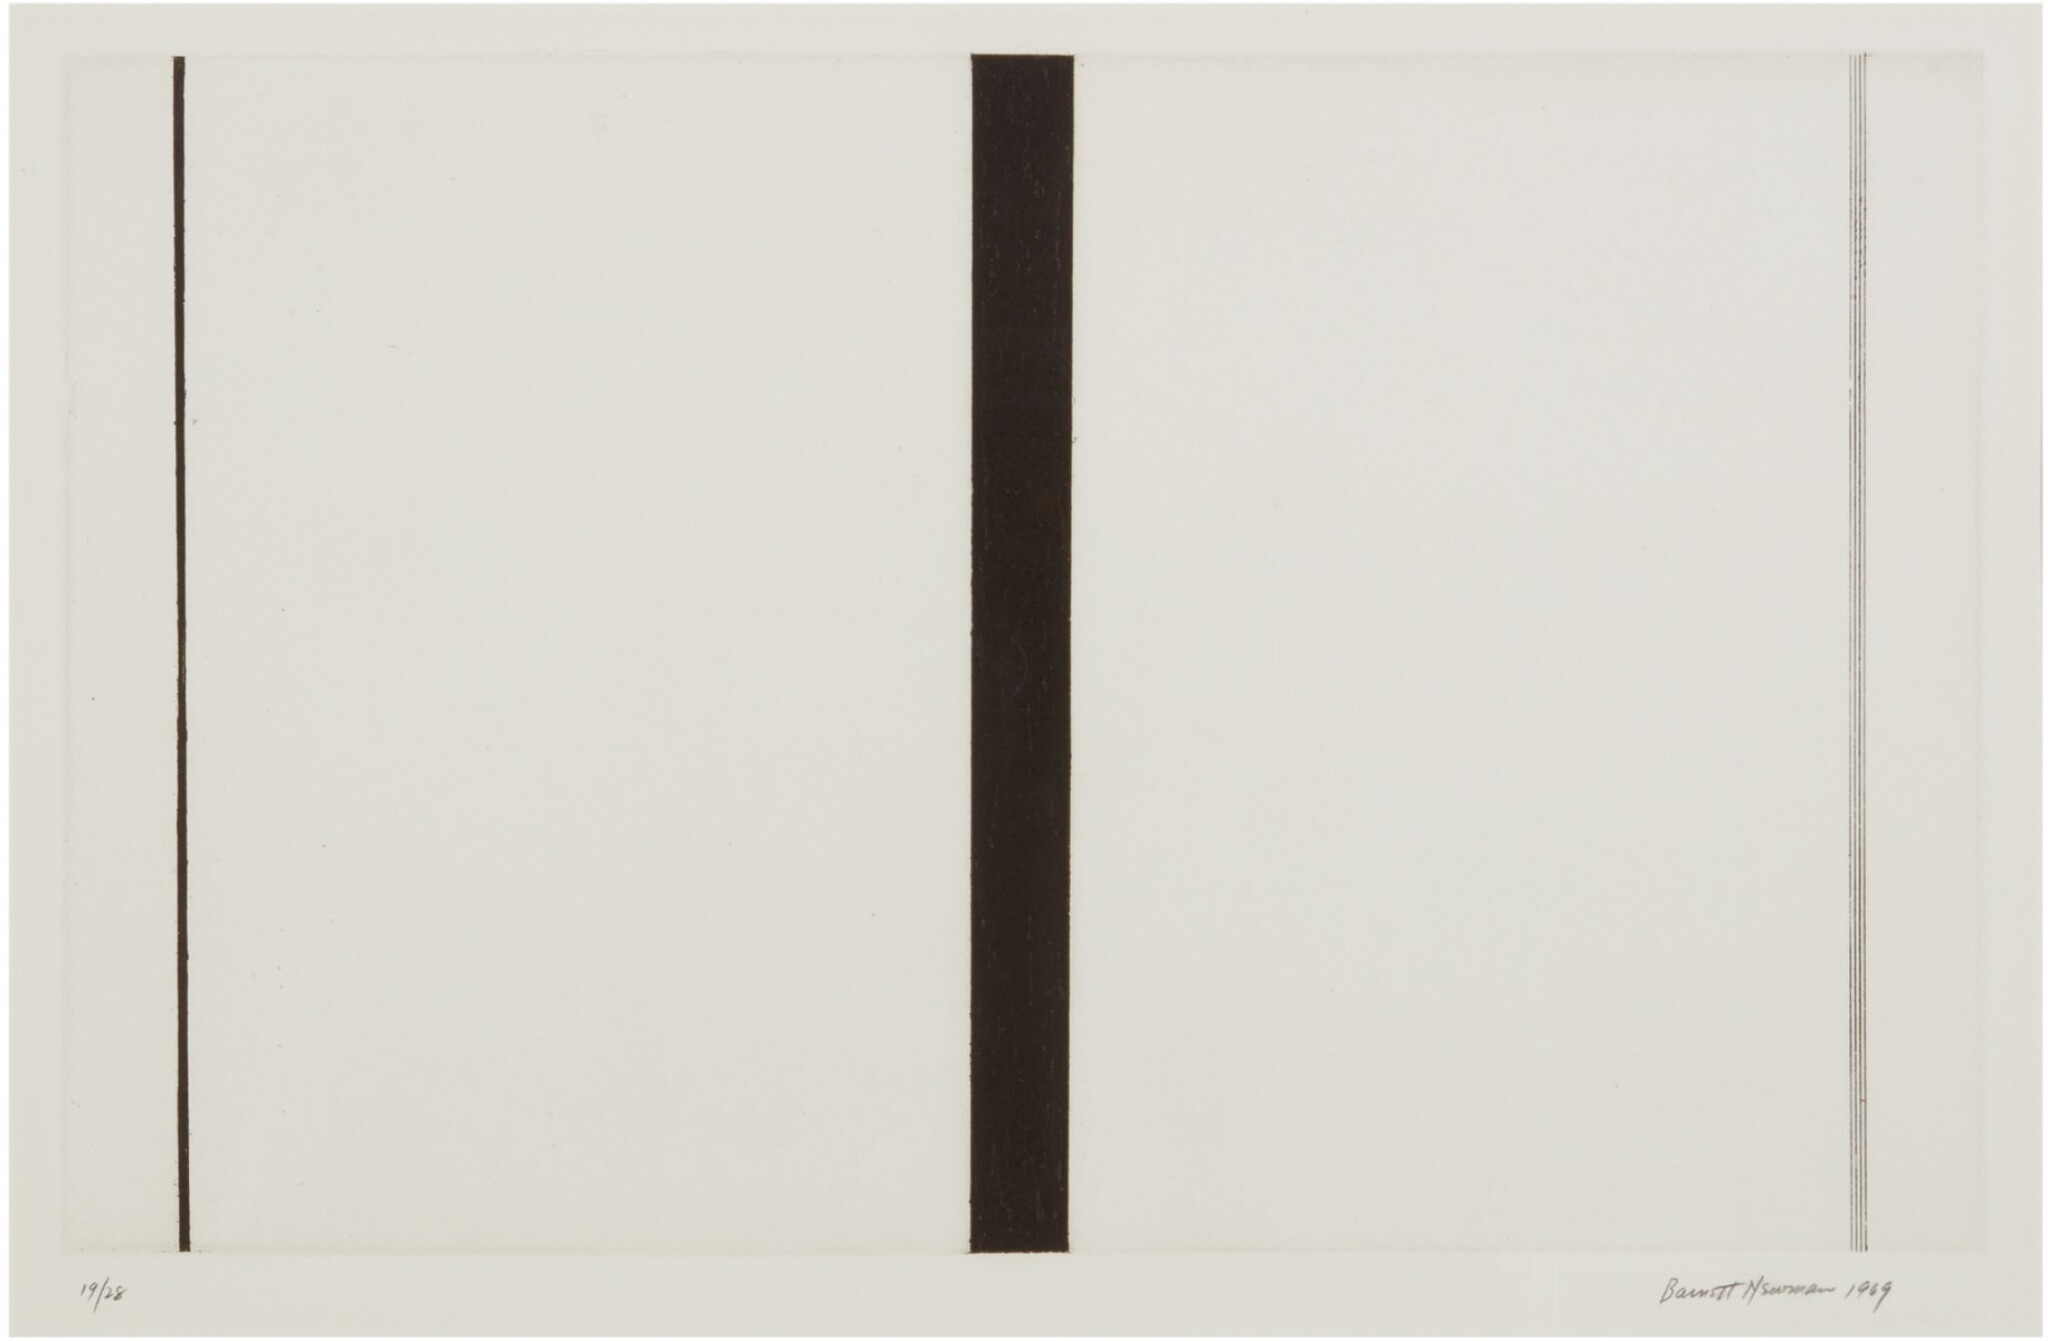 View 1 of Lot 204. BARNETT NEWMAN | UNTITLED ETCHING 1.